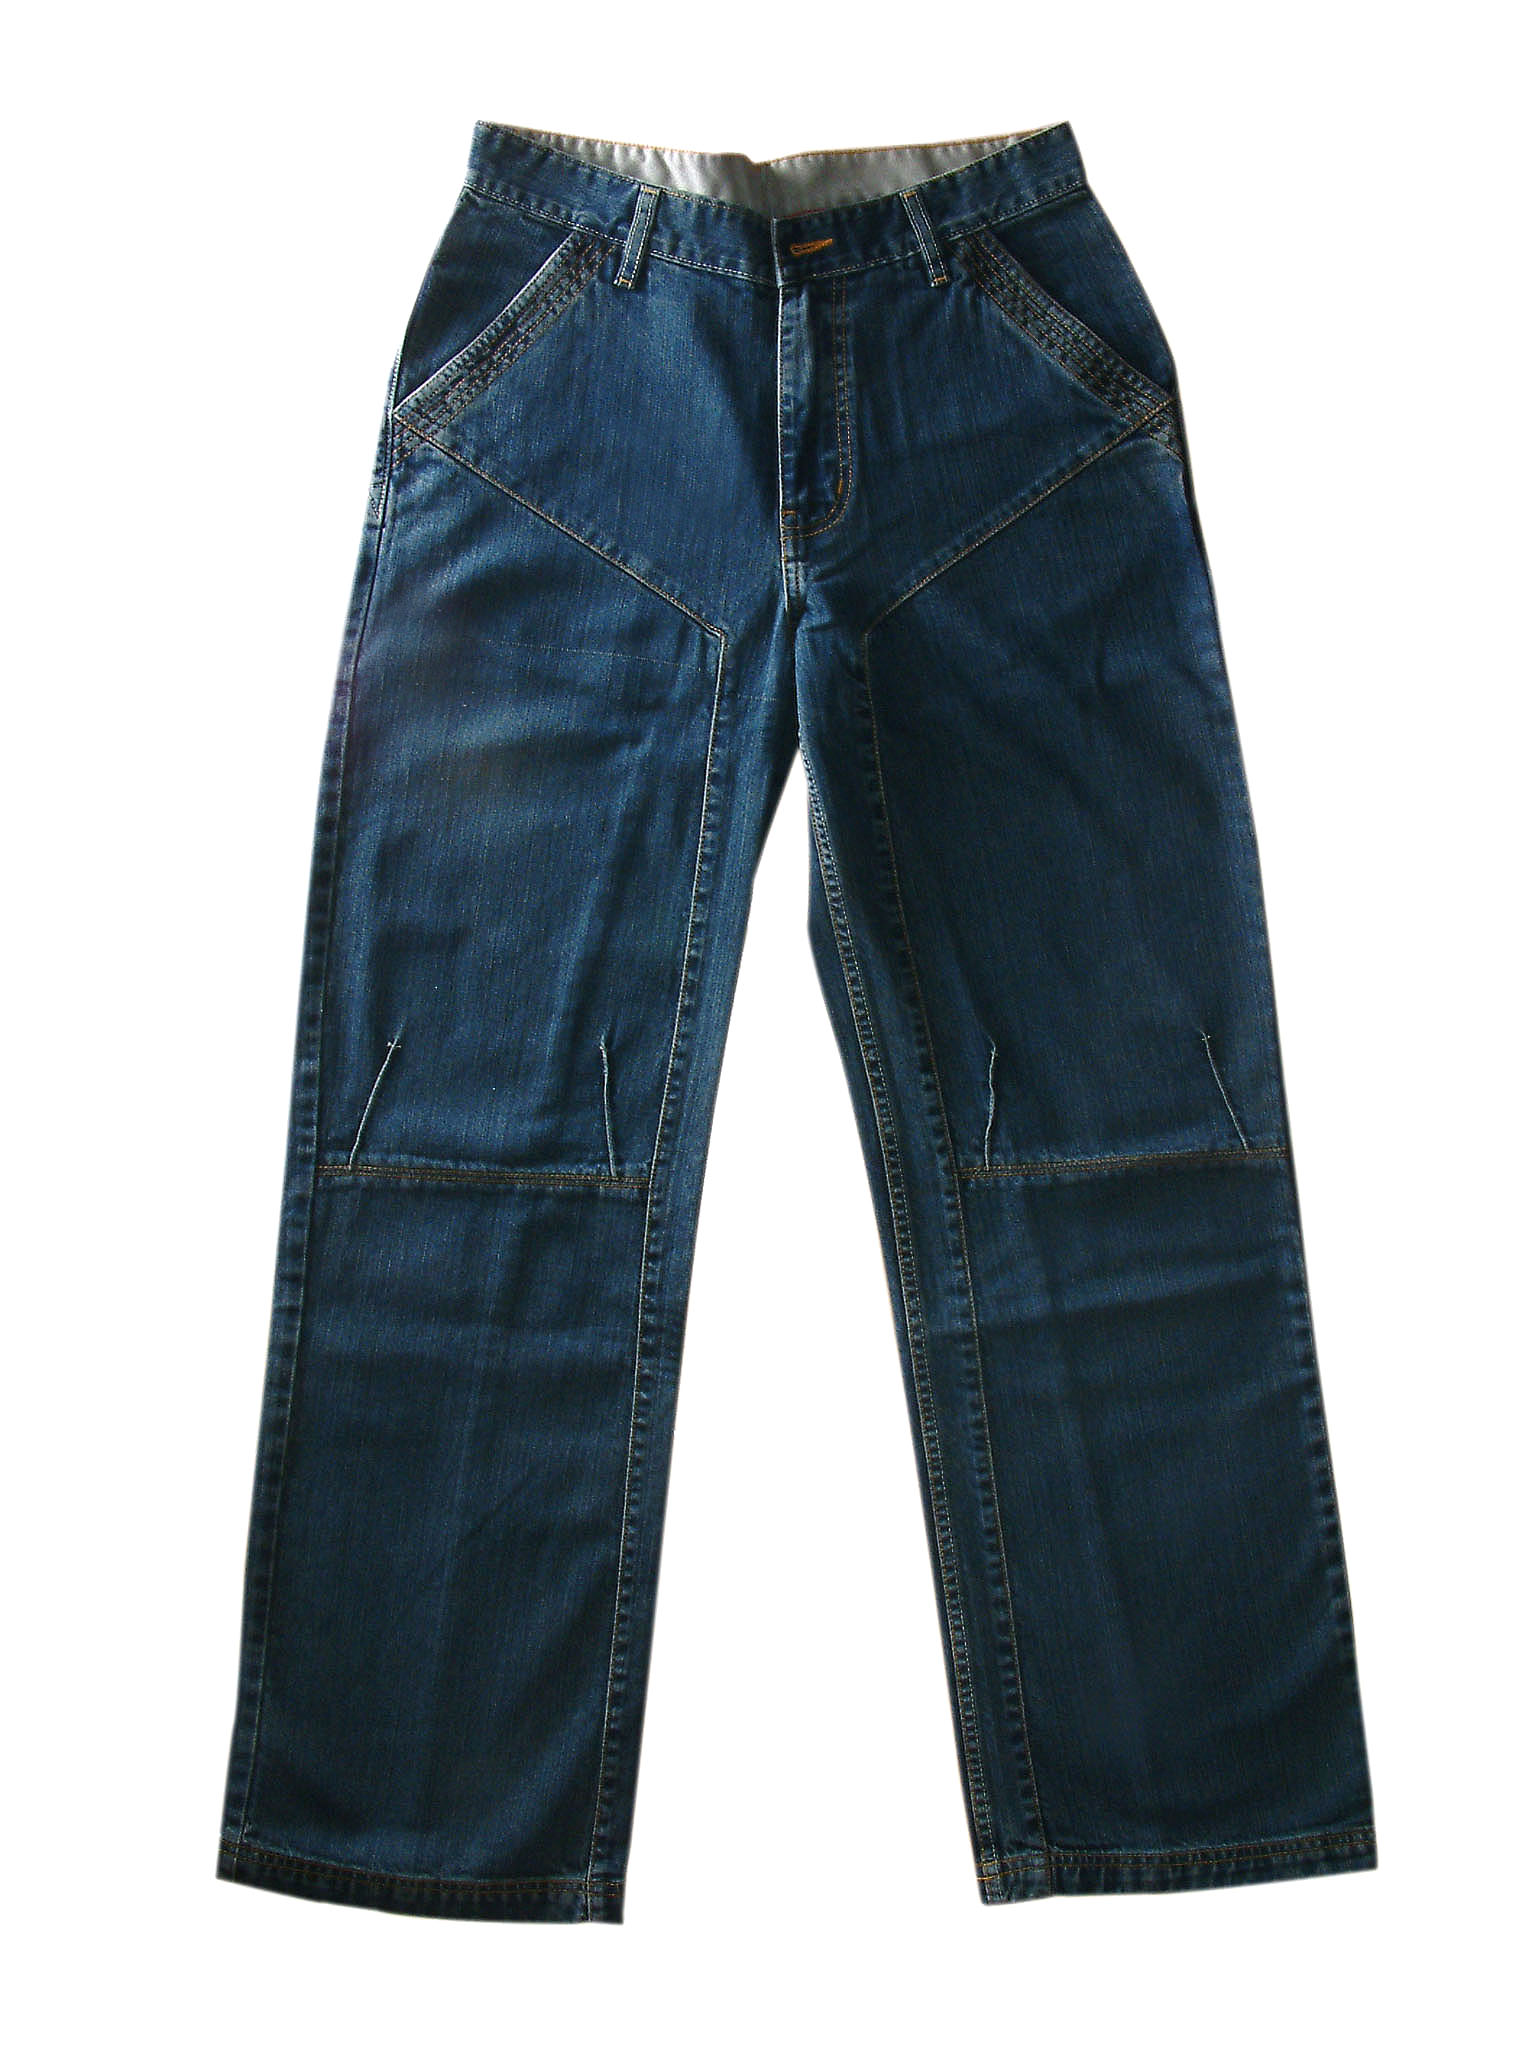 Various styles of Jeans, skirts, jackets, shorts etc